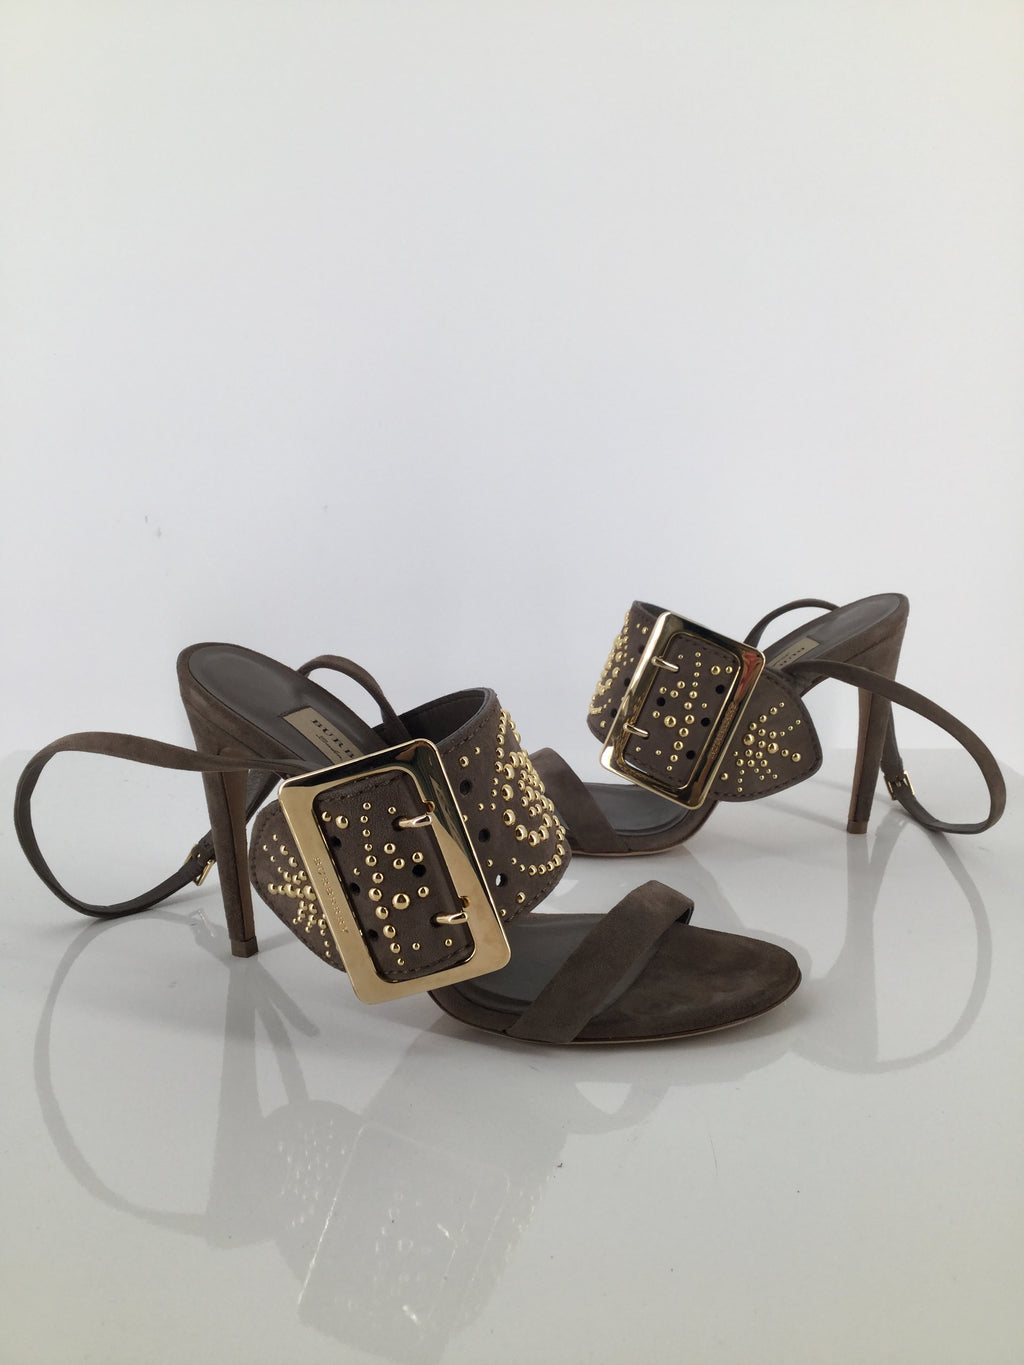 Burberry Sandals High Size:7